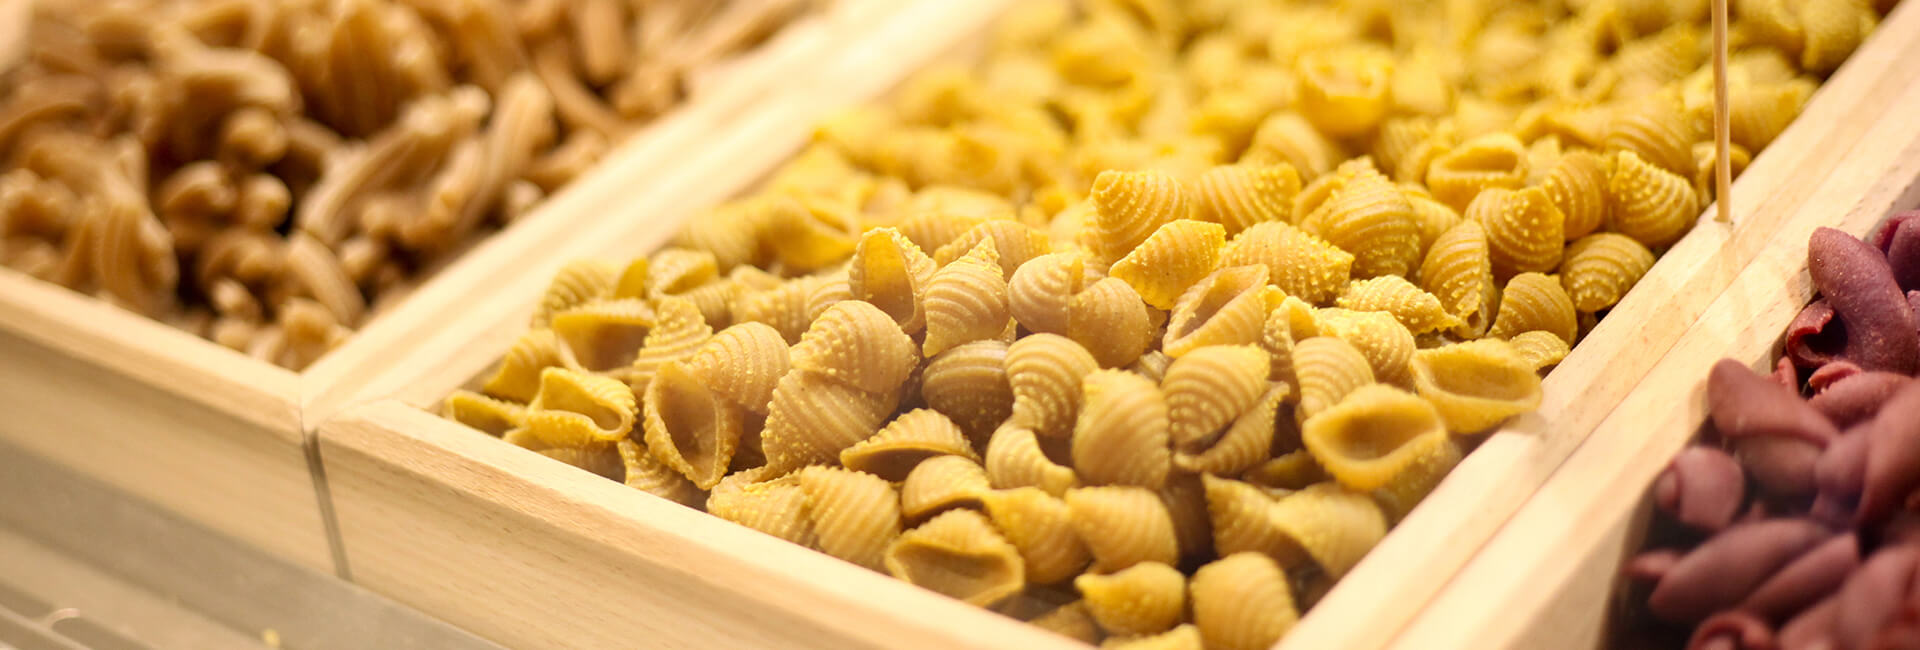 bins of grains and pasta